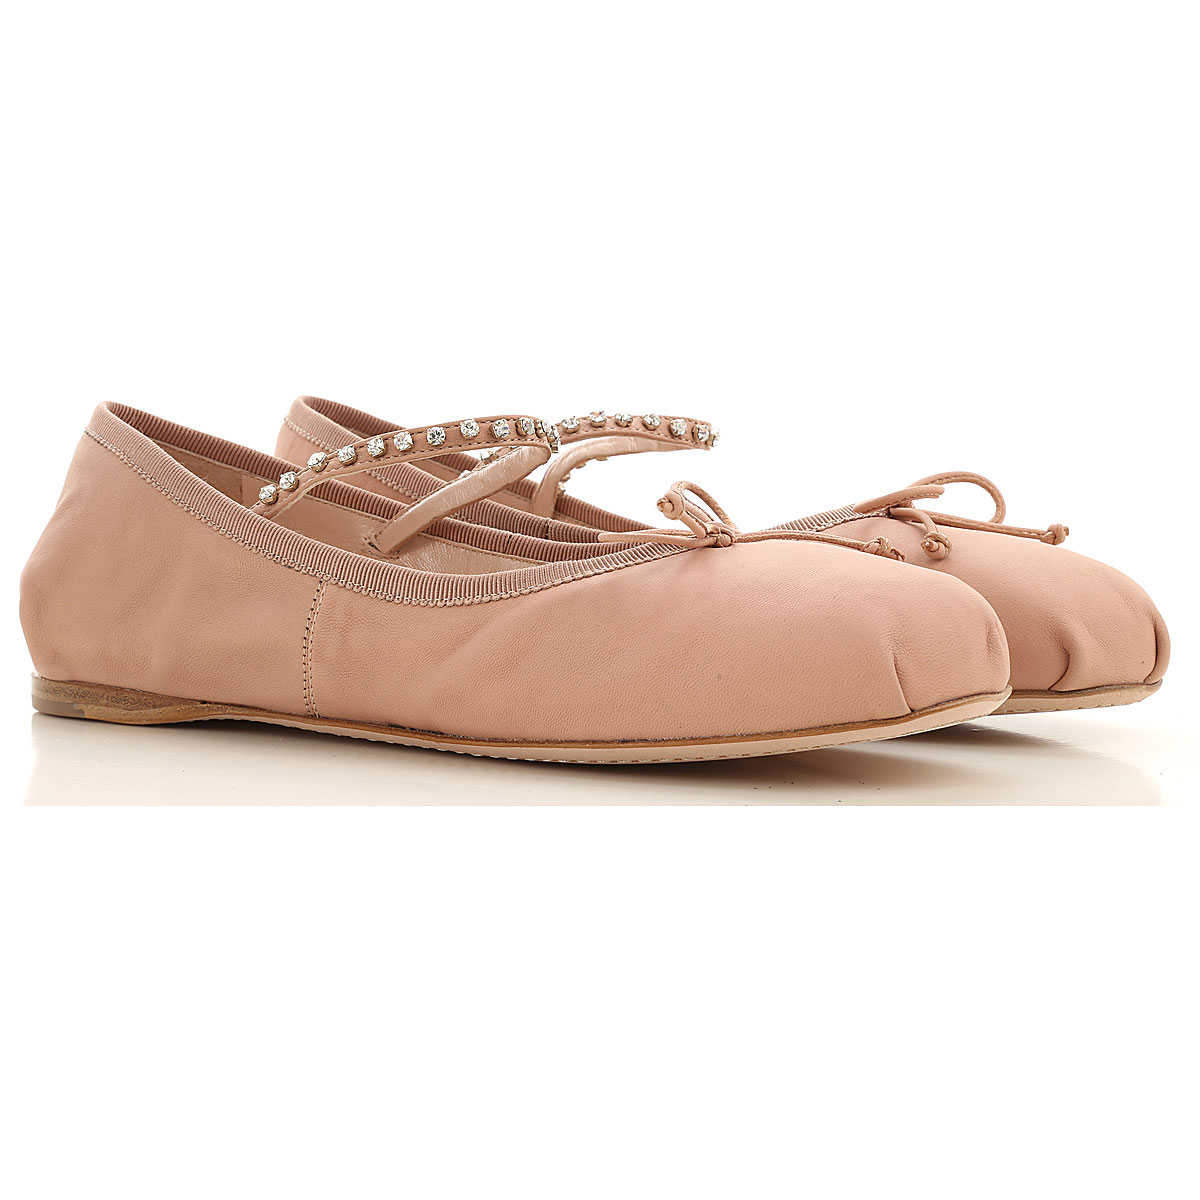 Miu Miu Ballet Flats Ballerina Shoes for Women On Sale, Nude, Leather, 2019, 7 8